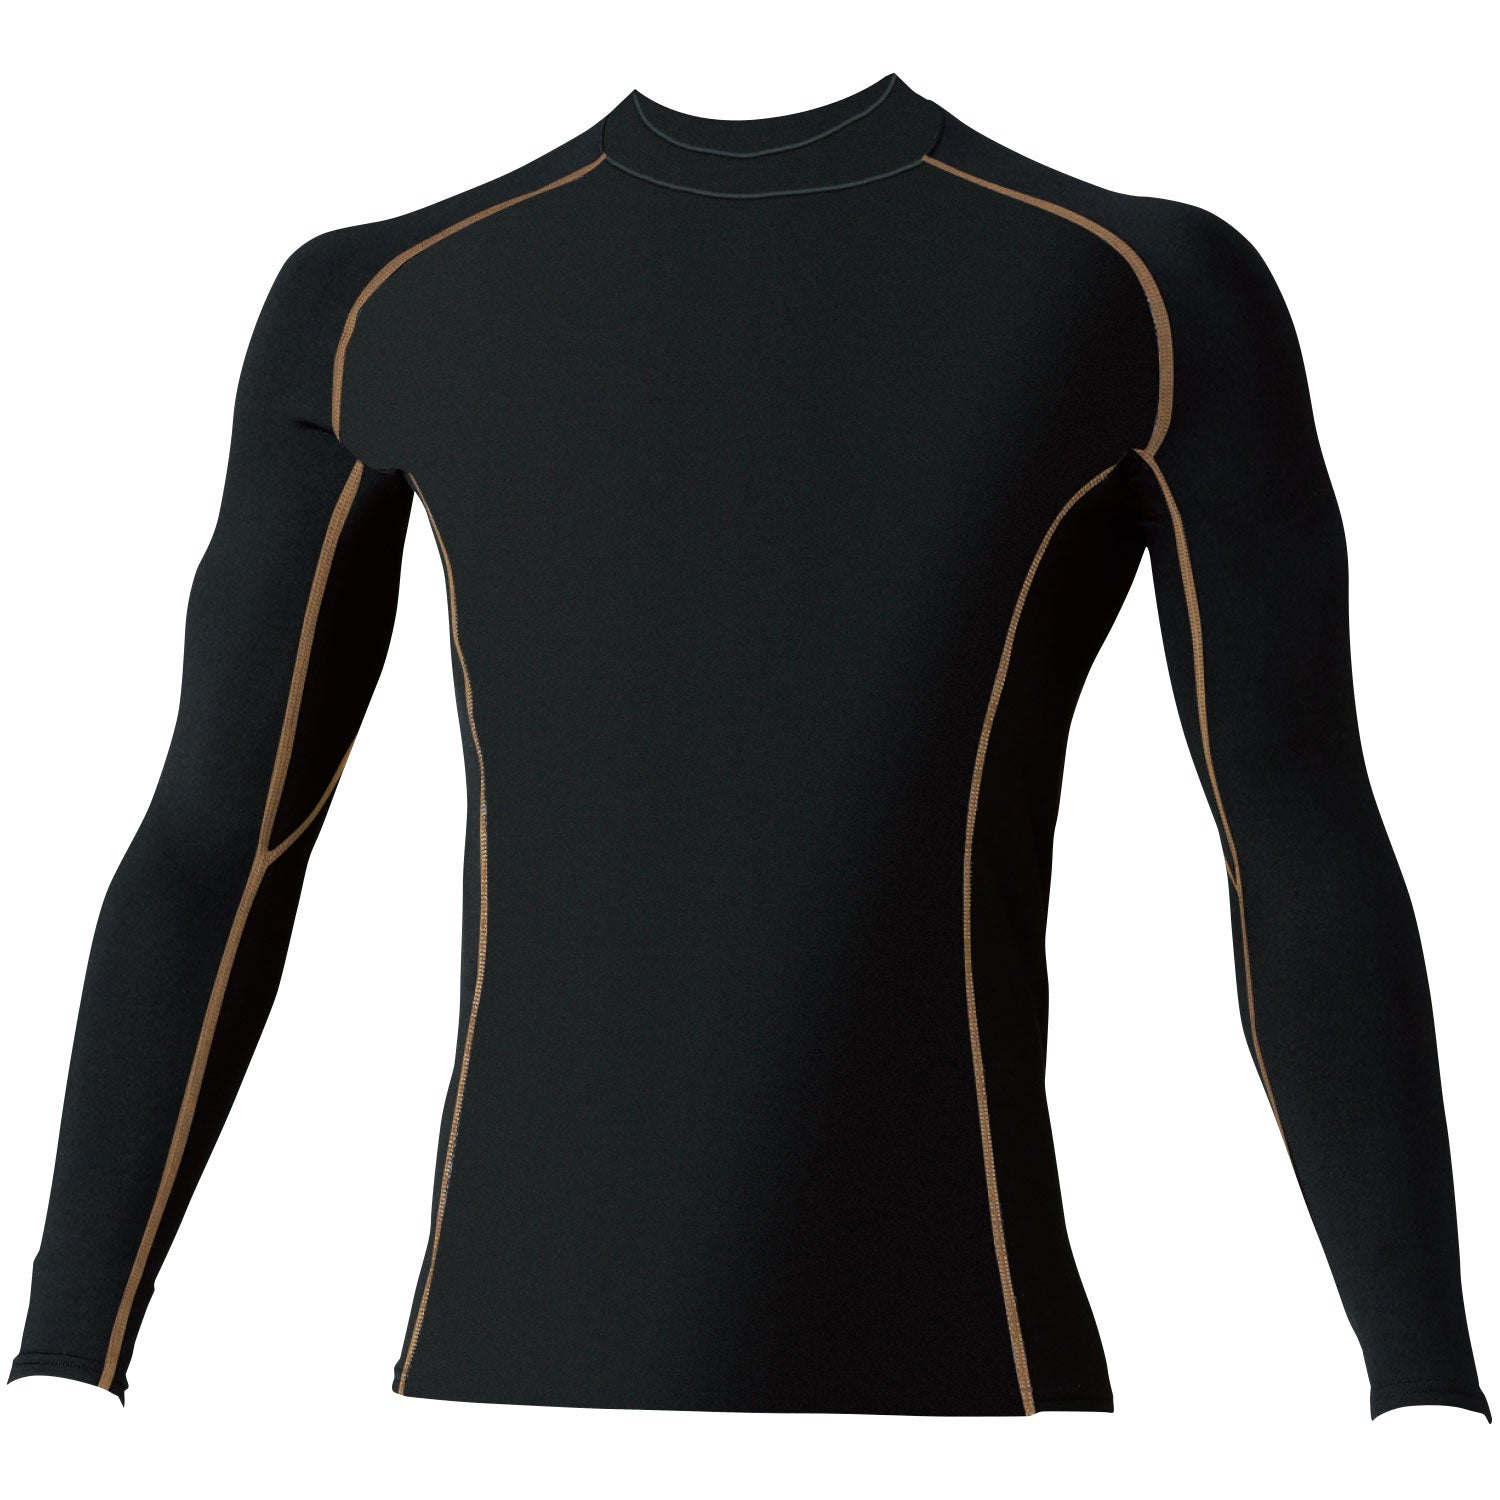 SOWA 7095-40 Long sleeve Support shirt